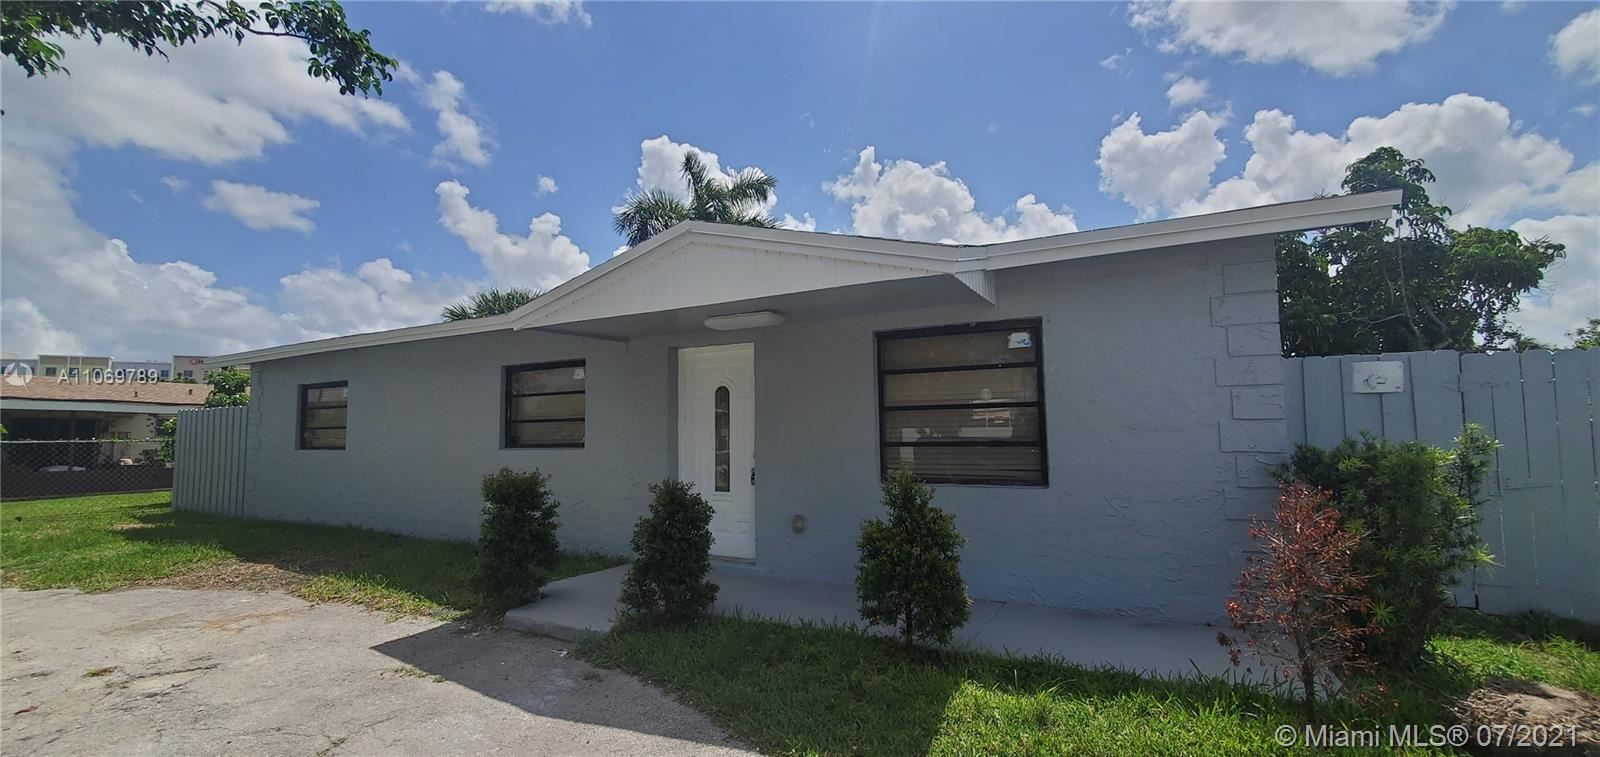 30630 SW 152nd Ave, Homestead, FL 33033 - #: A11069789